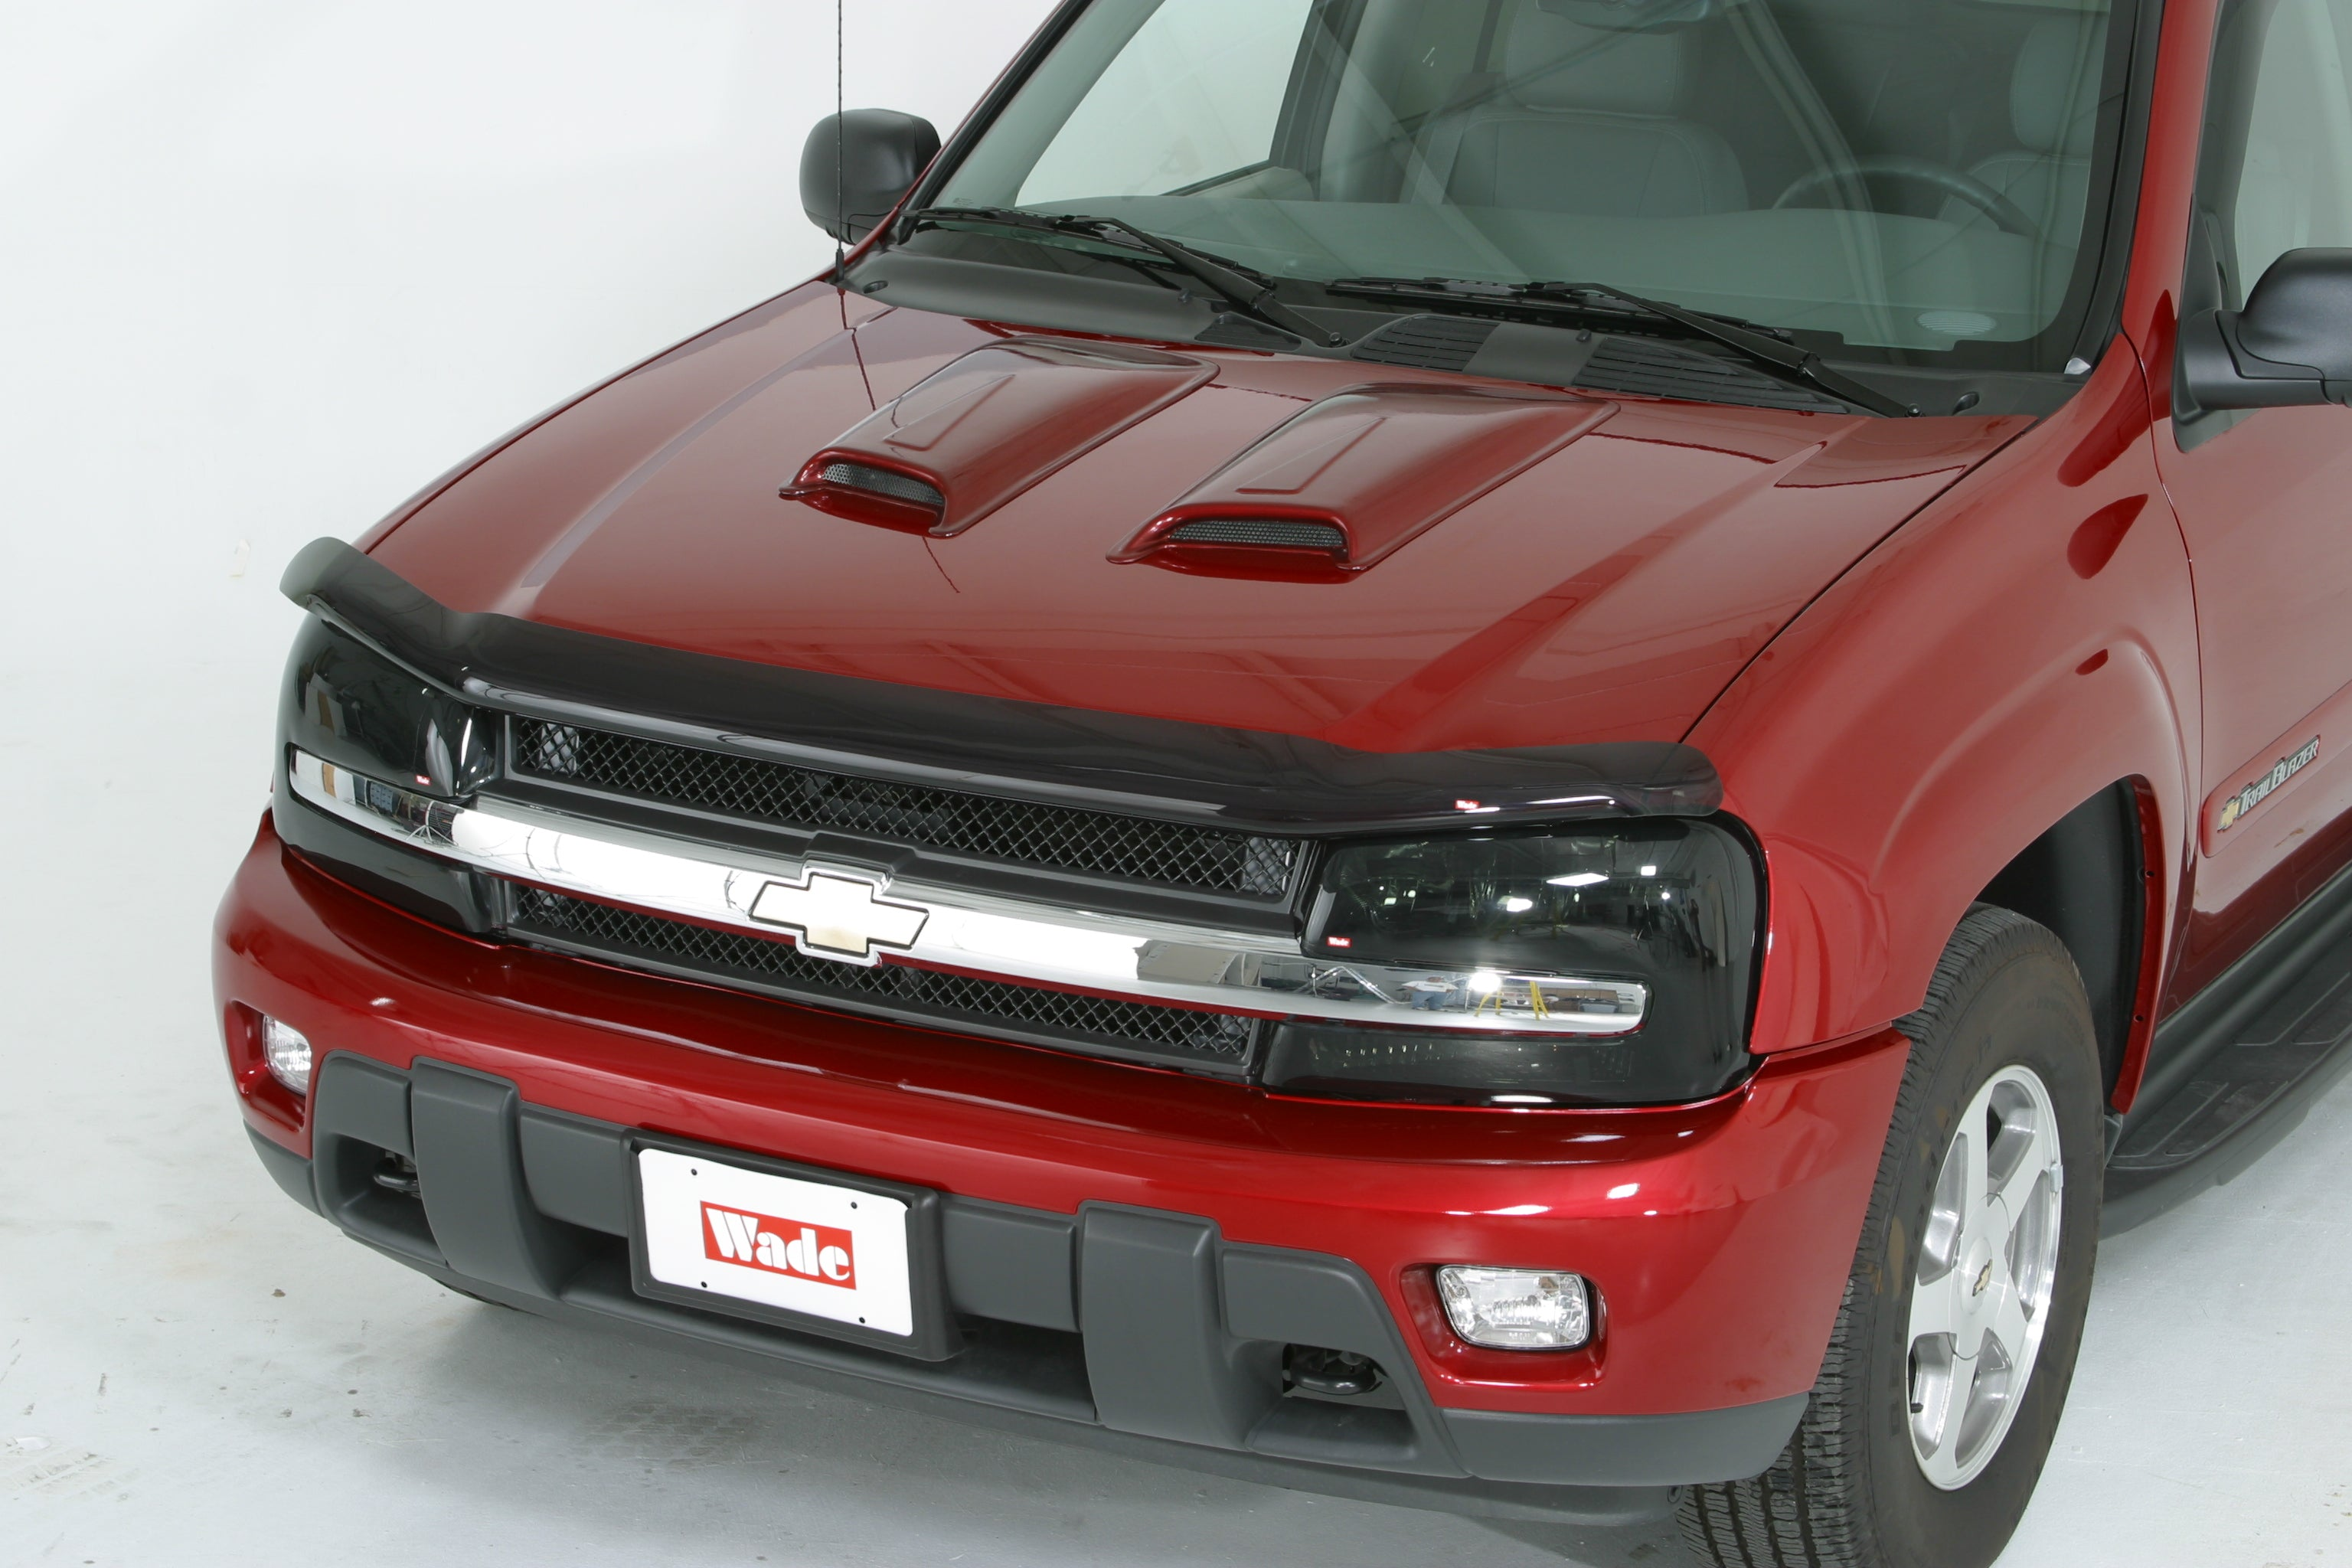 1997 Nissan Pickup 4WD (recessed light) Head Light Covers